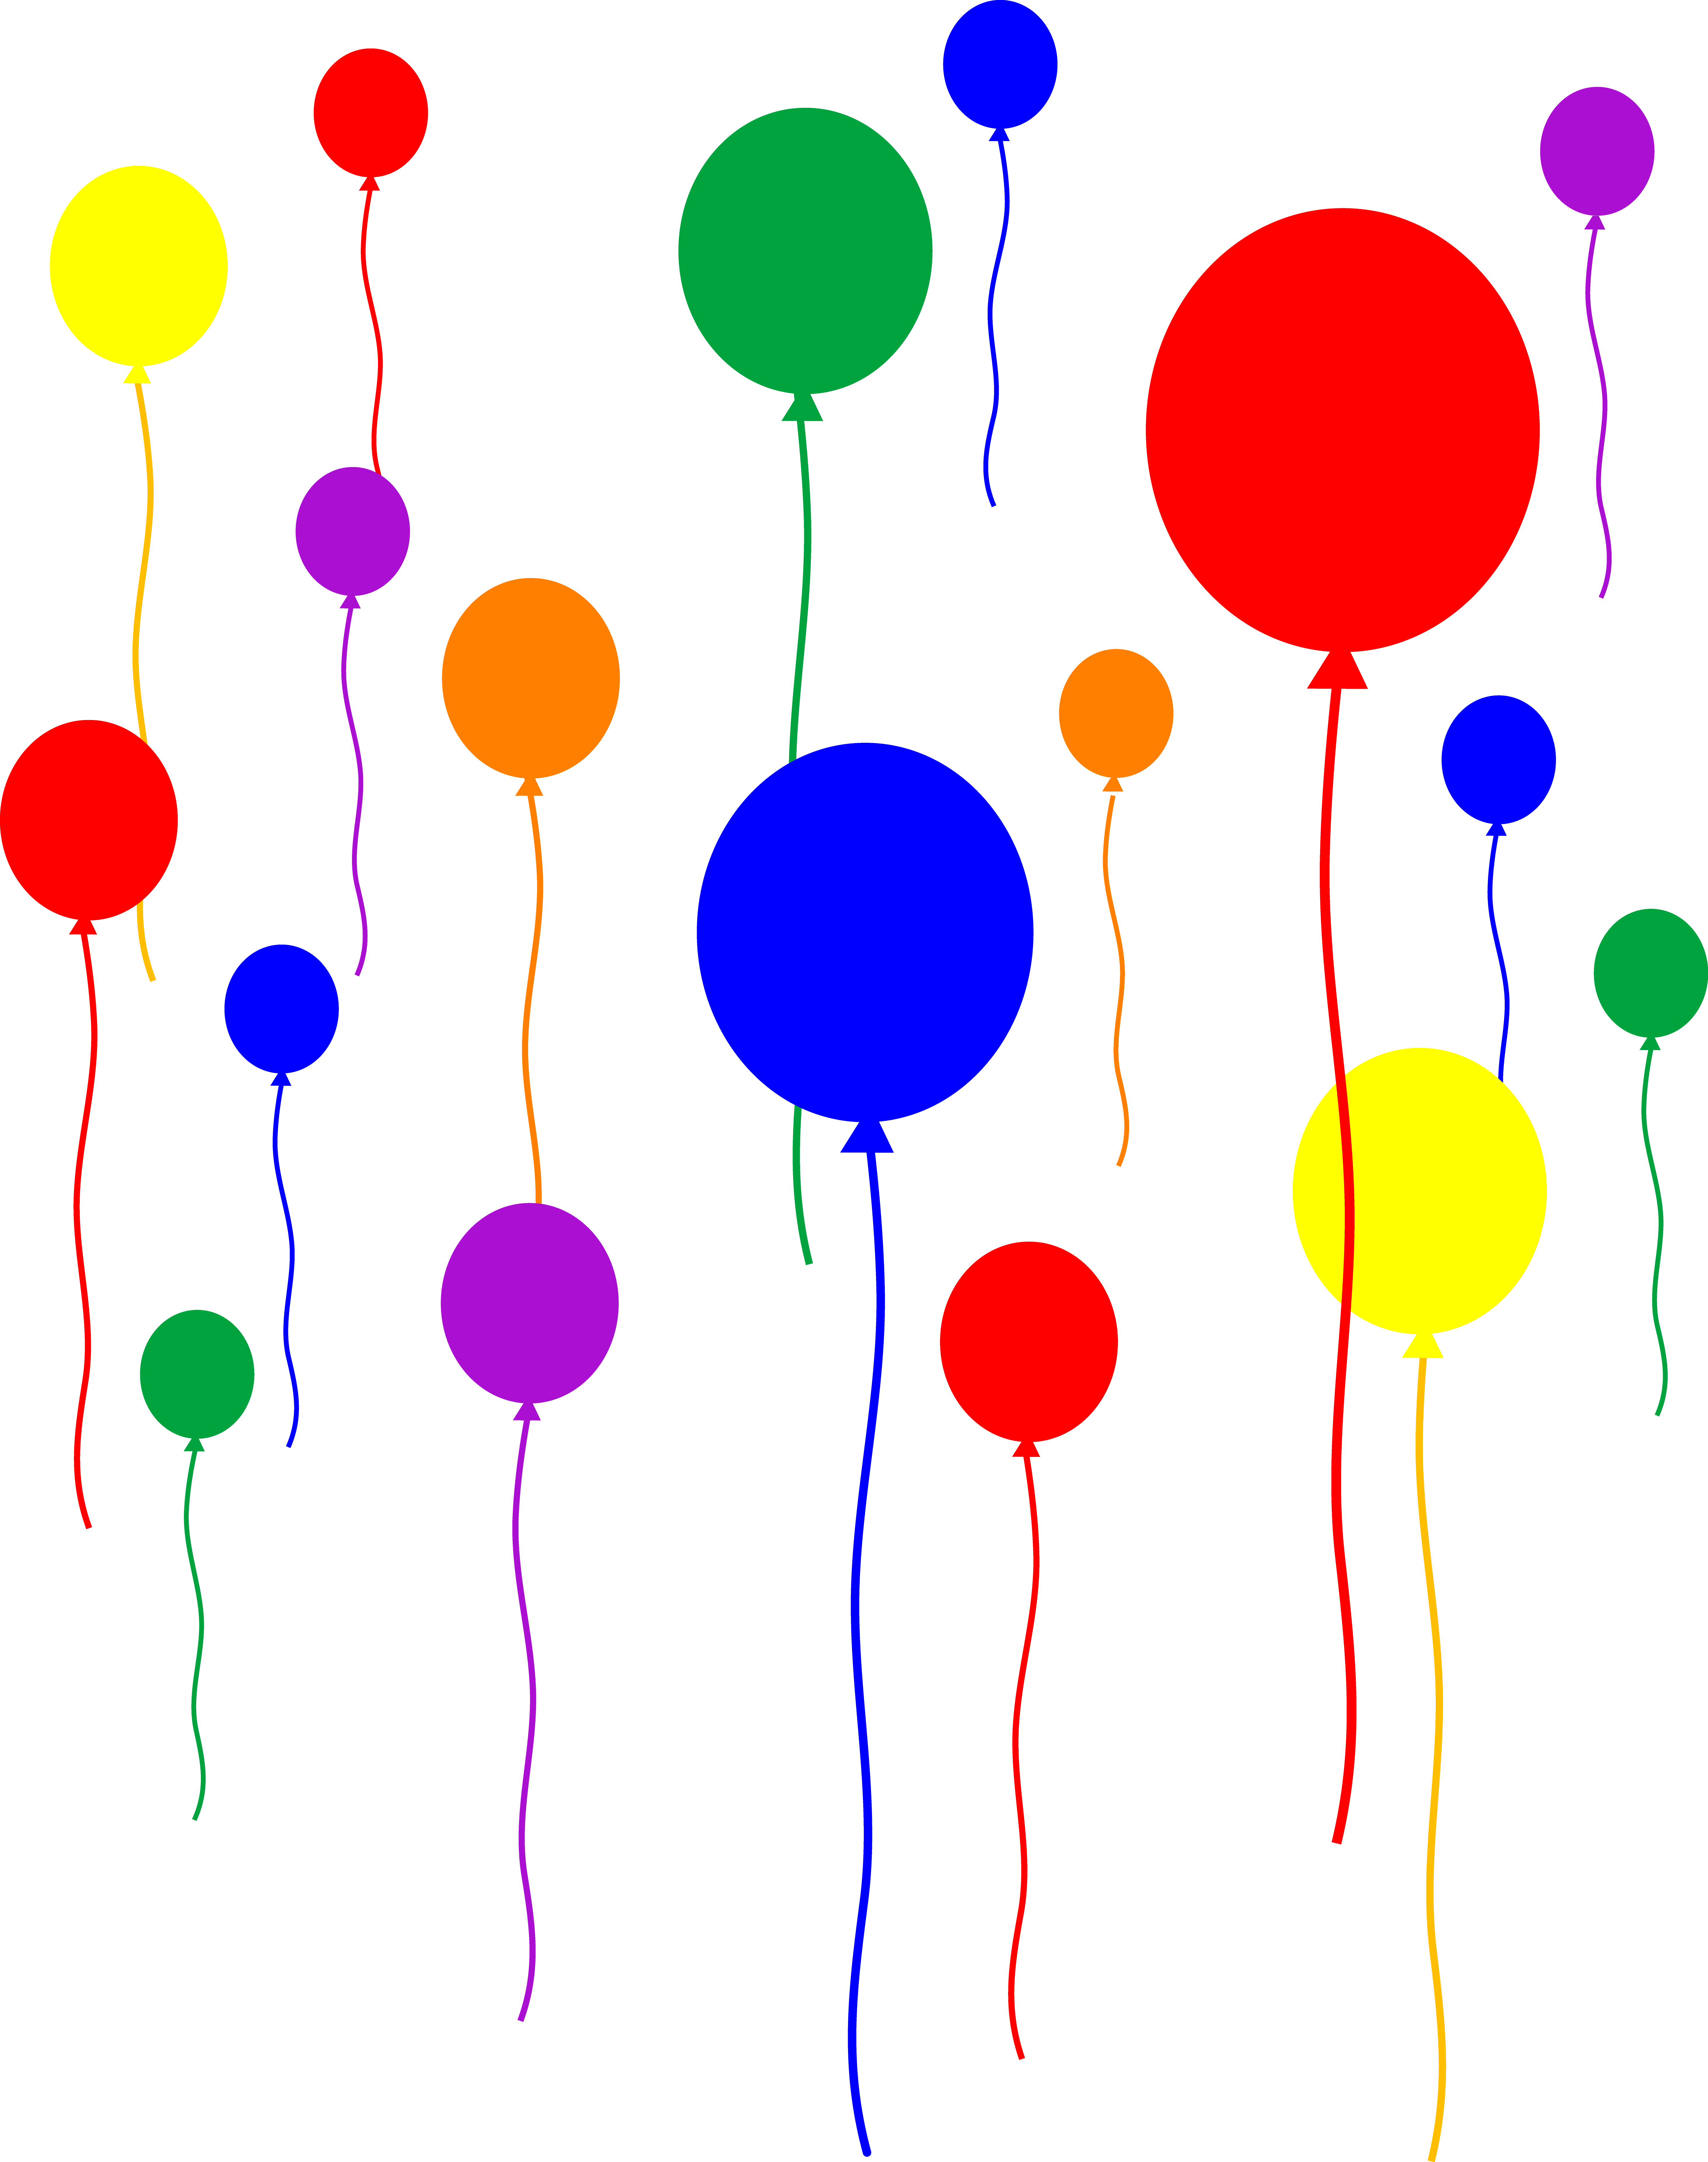 5847x7402 Party Balloons On Transparent Background